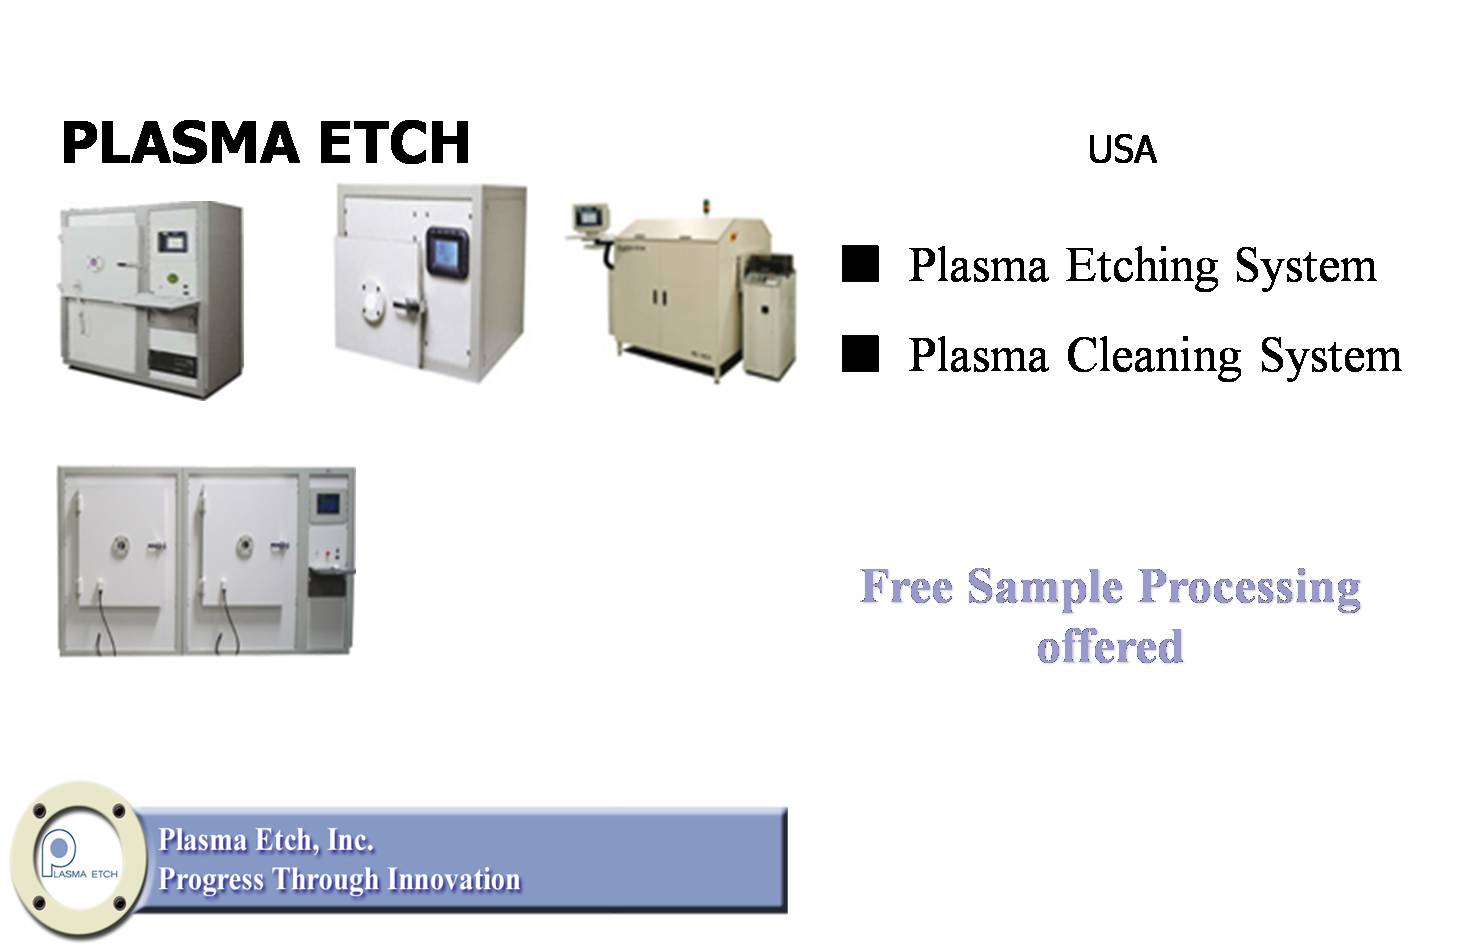 Telesemi Products - Plasma Etch